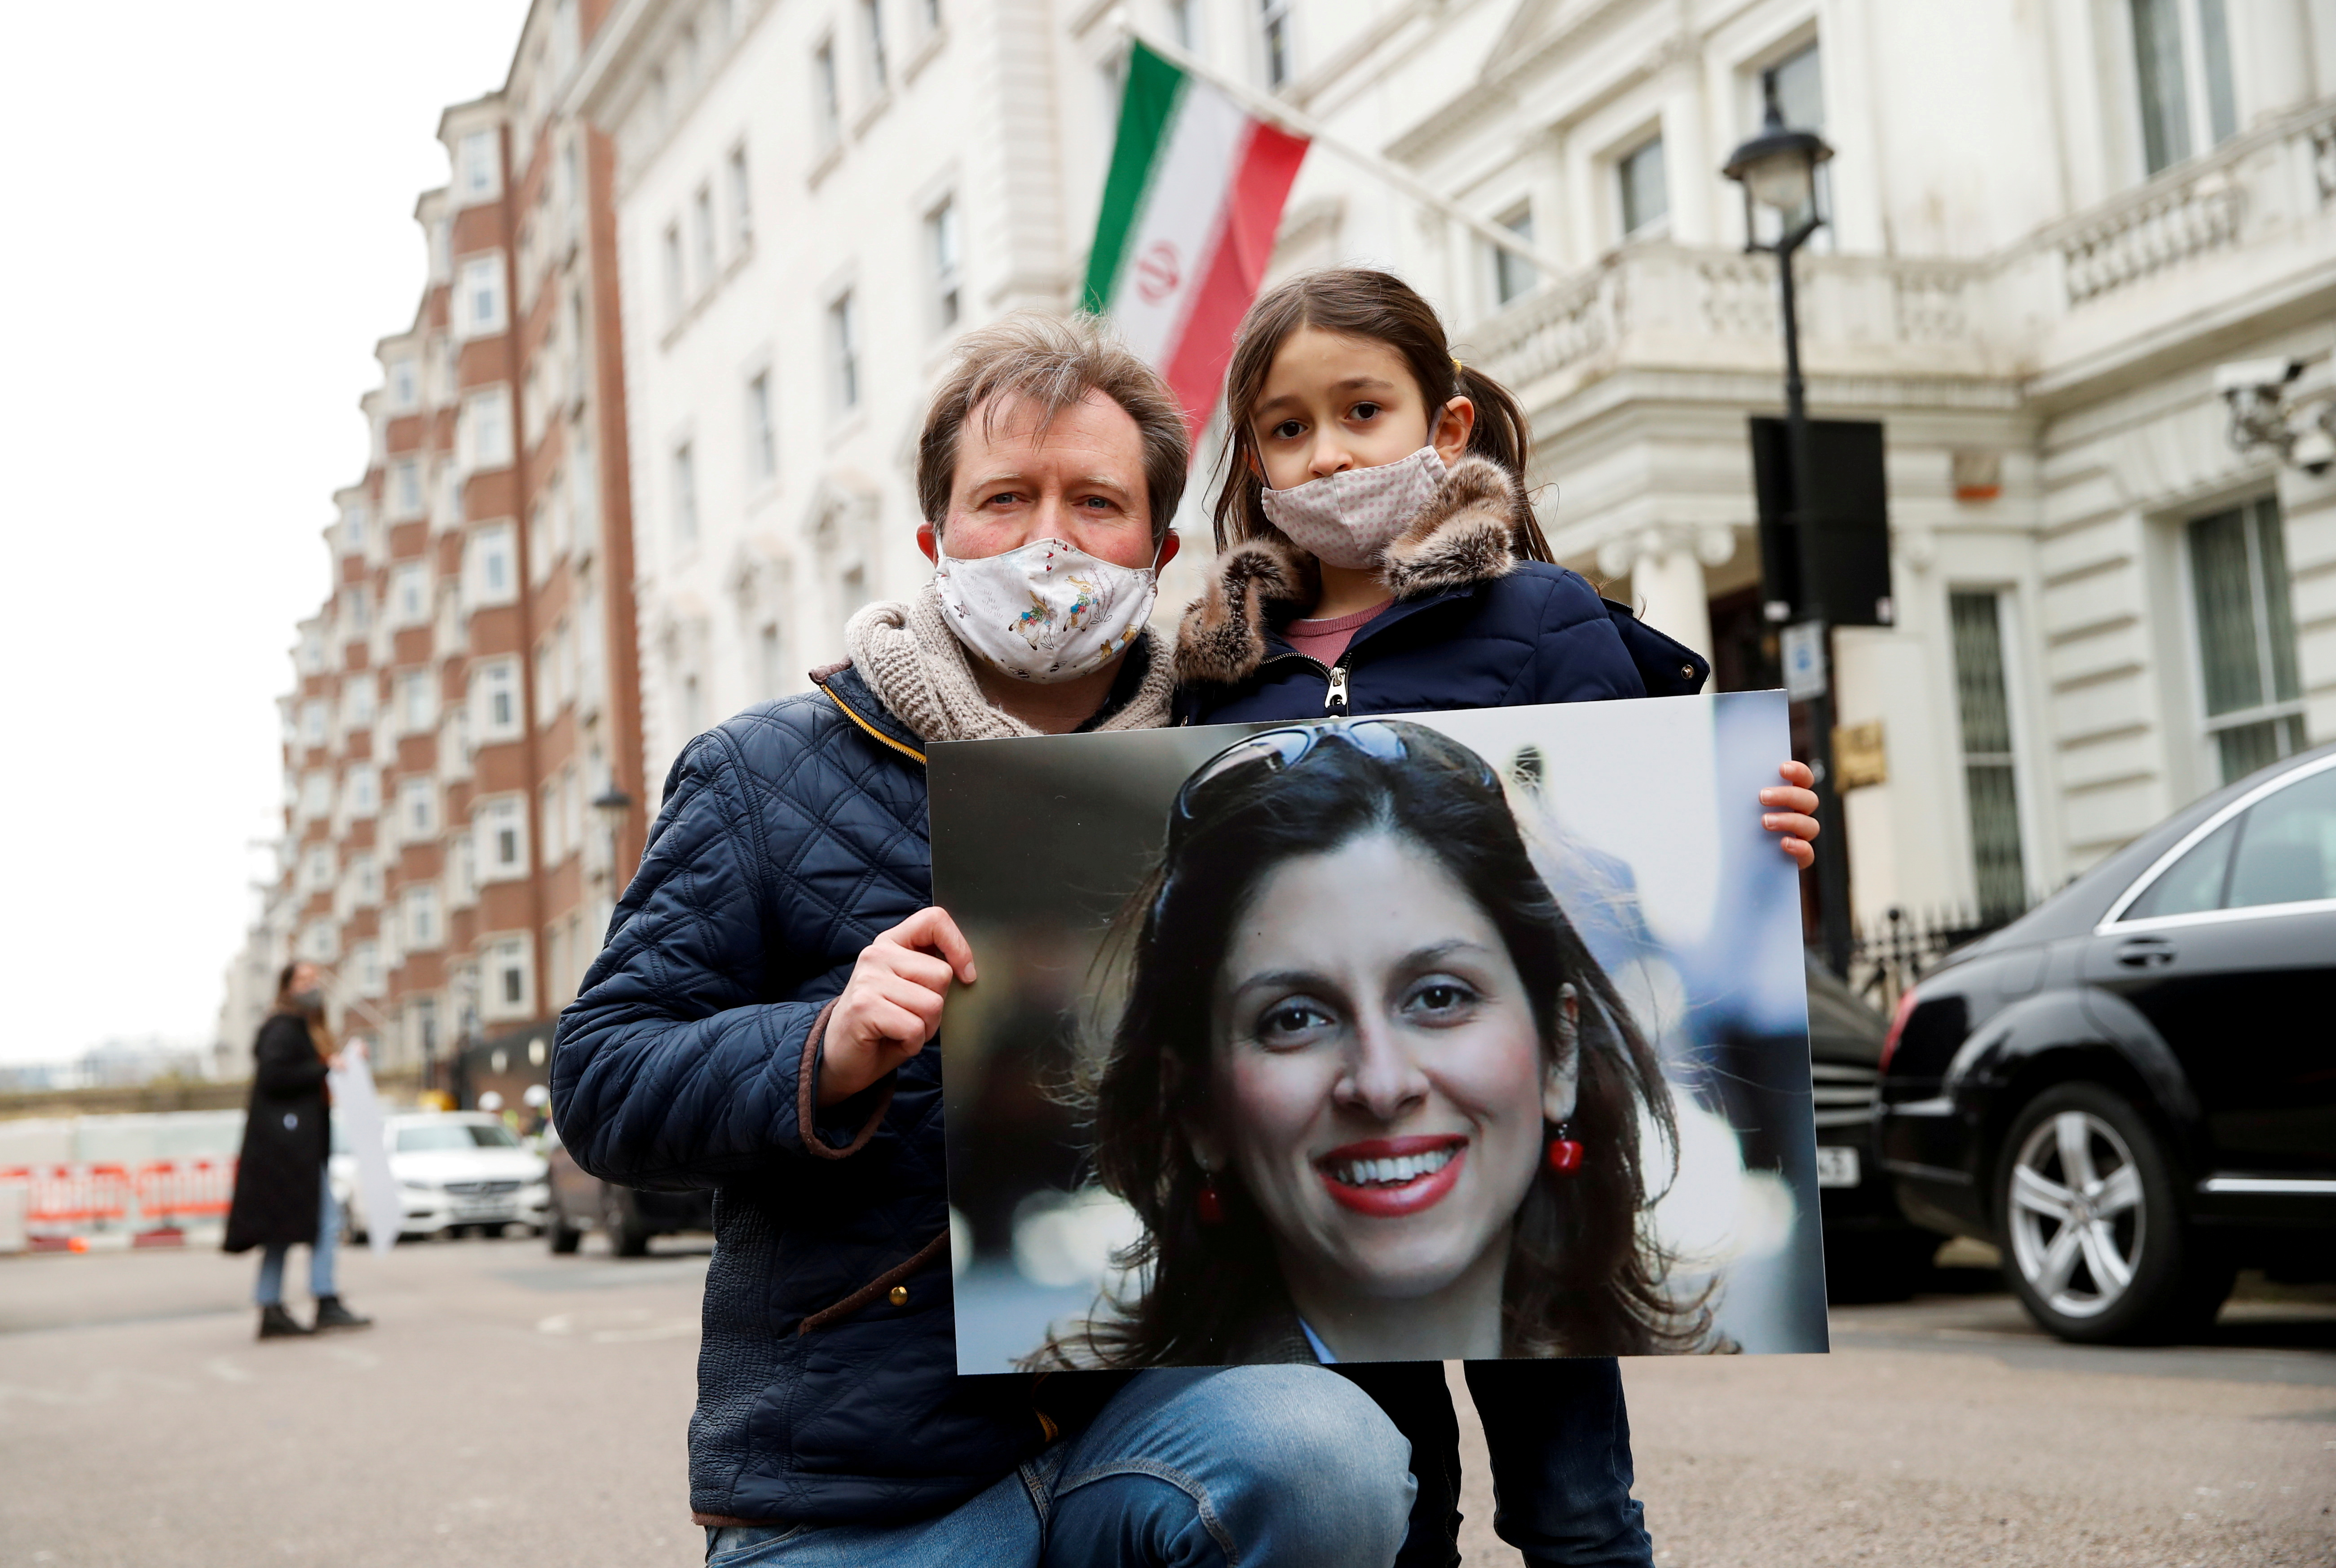 Richard Ratcliffe, husband of British-Iranian aid worker Nazanin Zaghari-Ratcliffe, and their daughter Gabriella protest outside the Iranian Embassy in London, Britain March 8, 2021. REUTERS/Andrew Boyers/File Photo